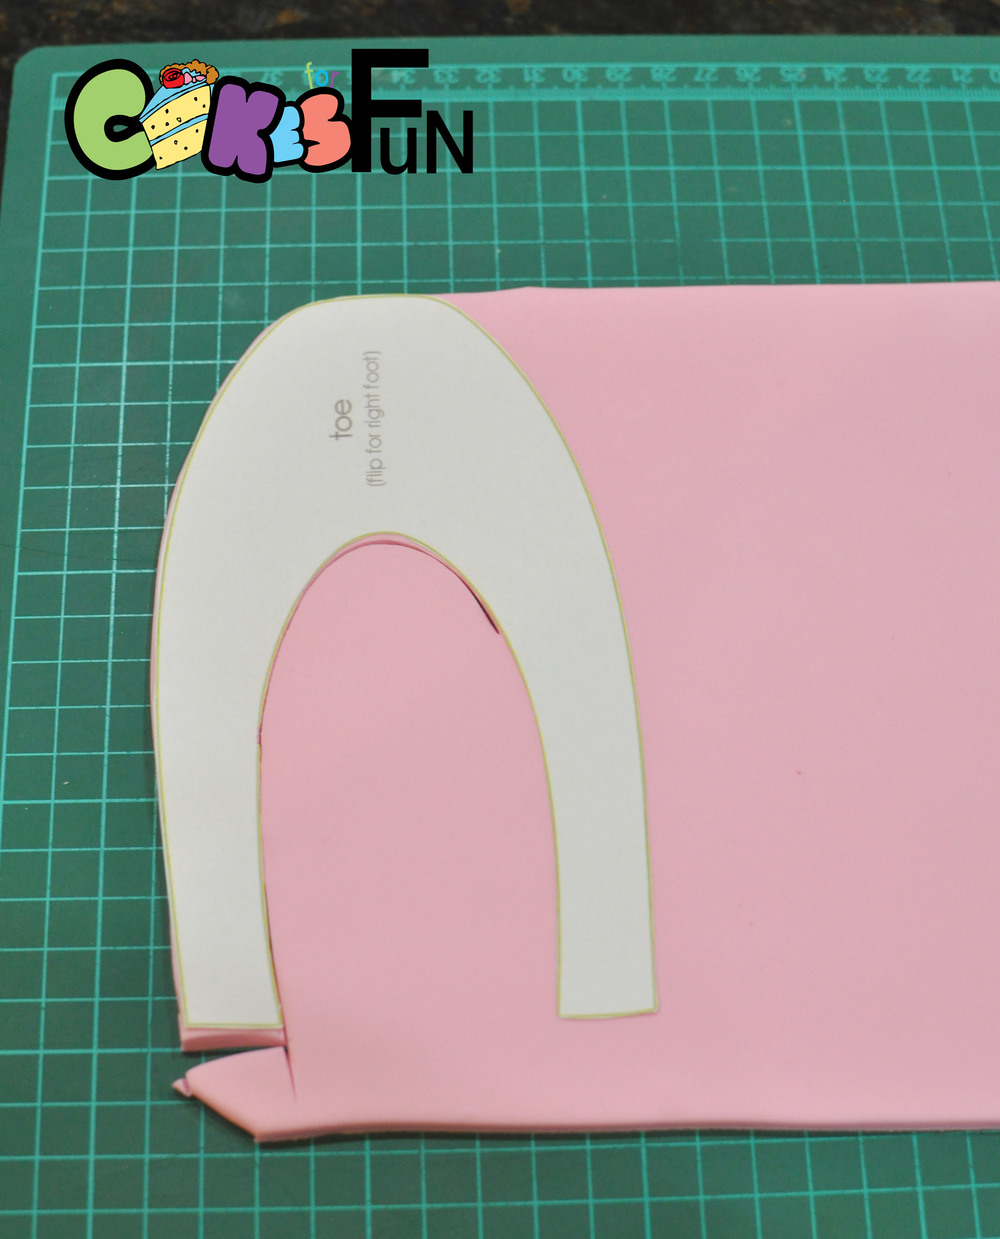 Now to do the top of the slipper. Follow steps above by rolling out your fondant, dusting your pattern and cutting out the first slipper top. Turn your pattern over and cut the top out for your other slipper.